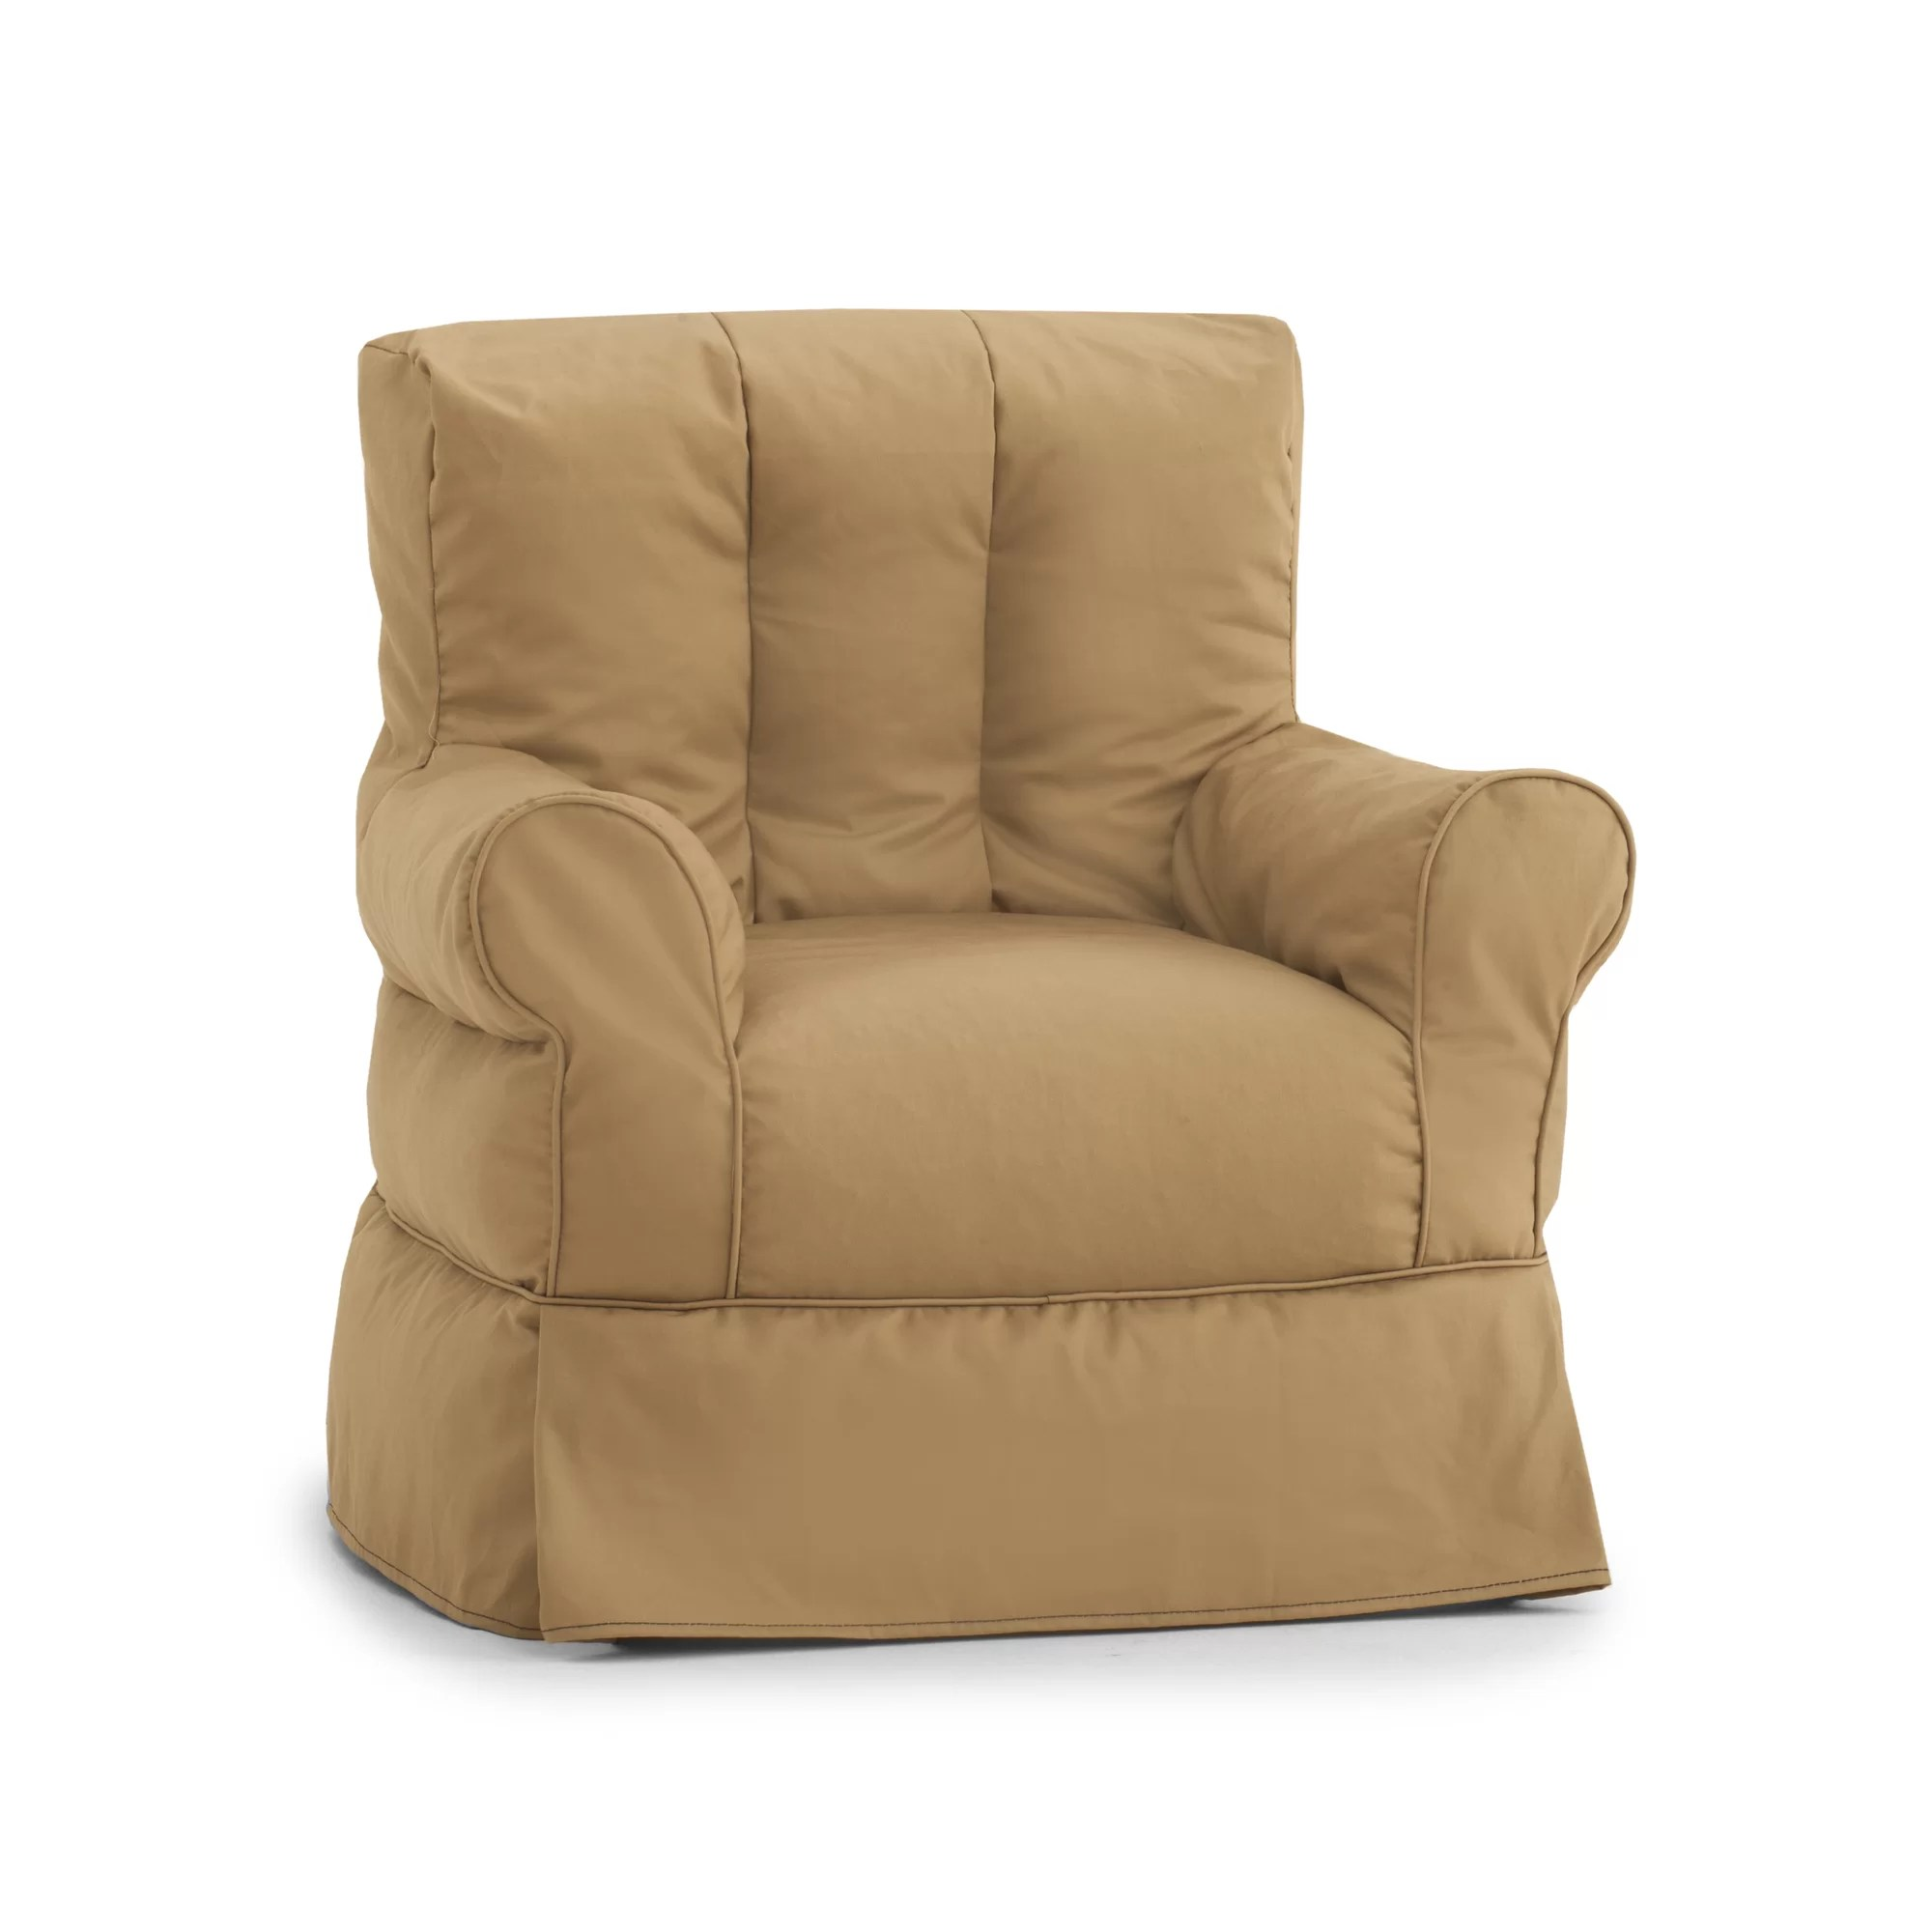 Big Joe Milano Chair Comfort Research Big Joe Babette Bean Bag Chair Ebay